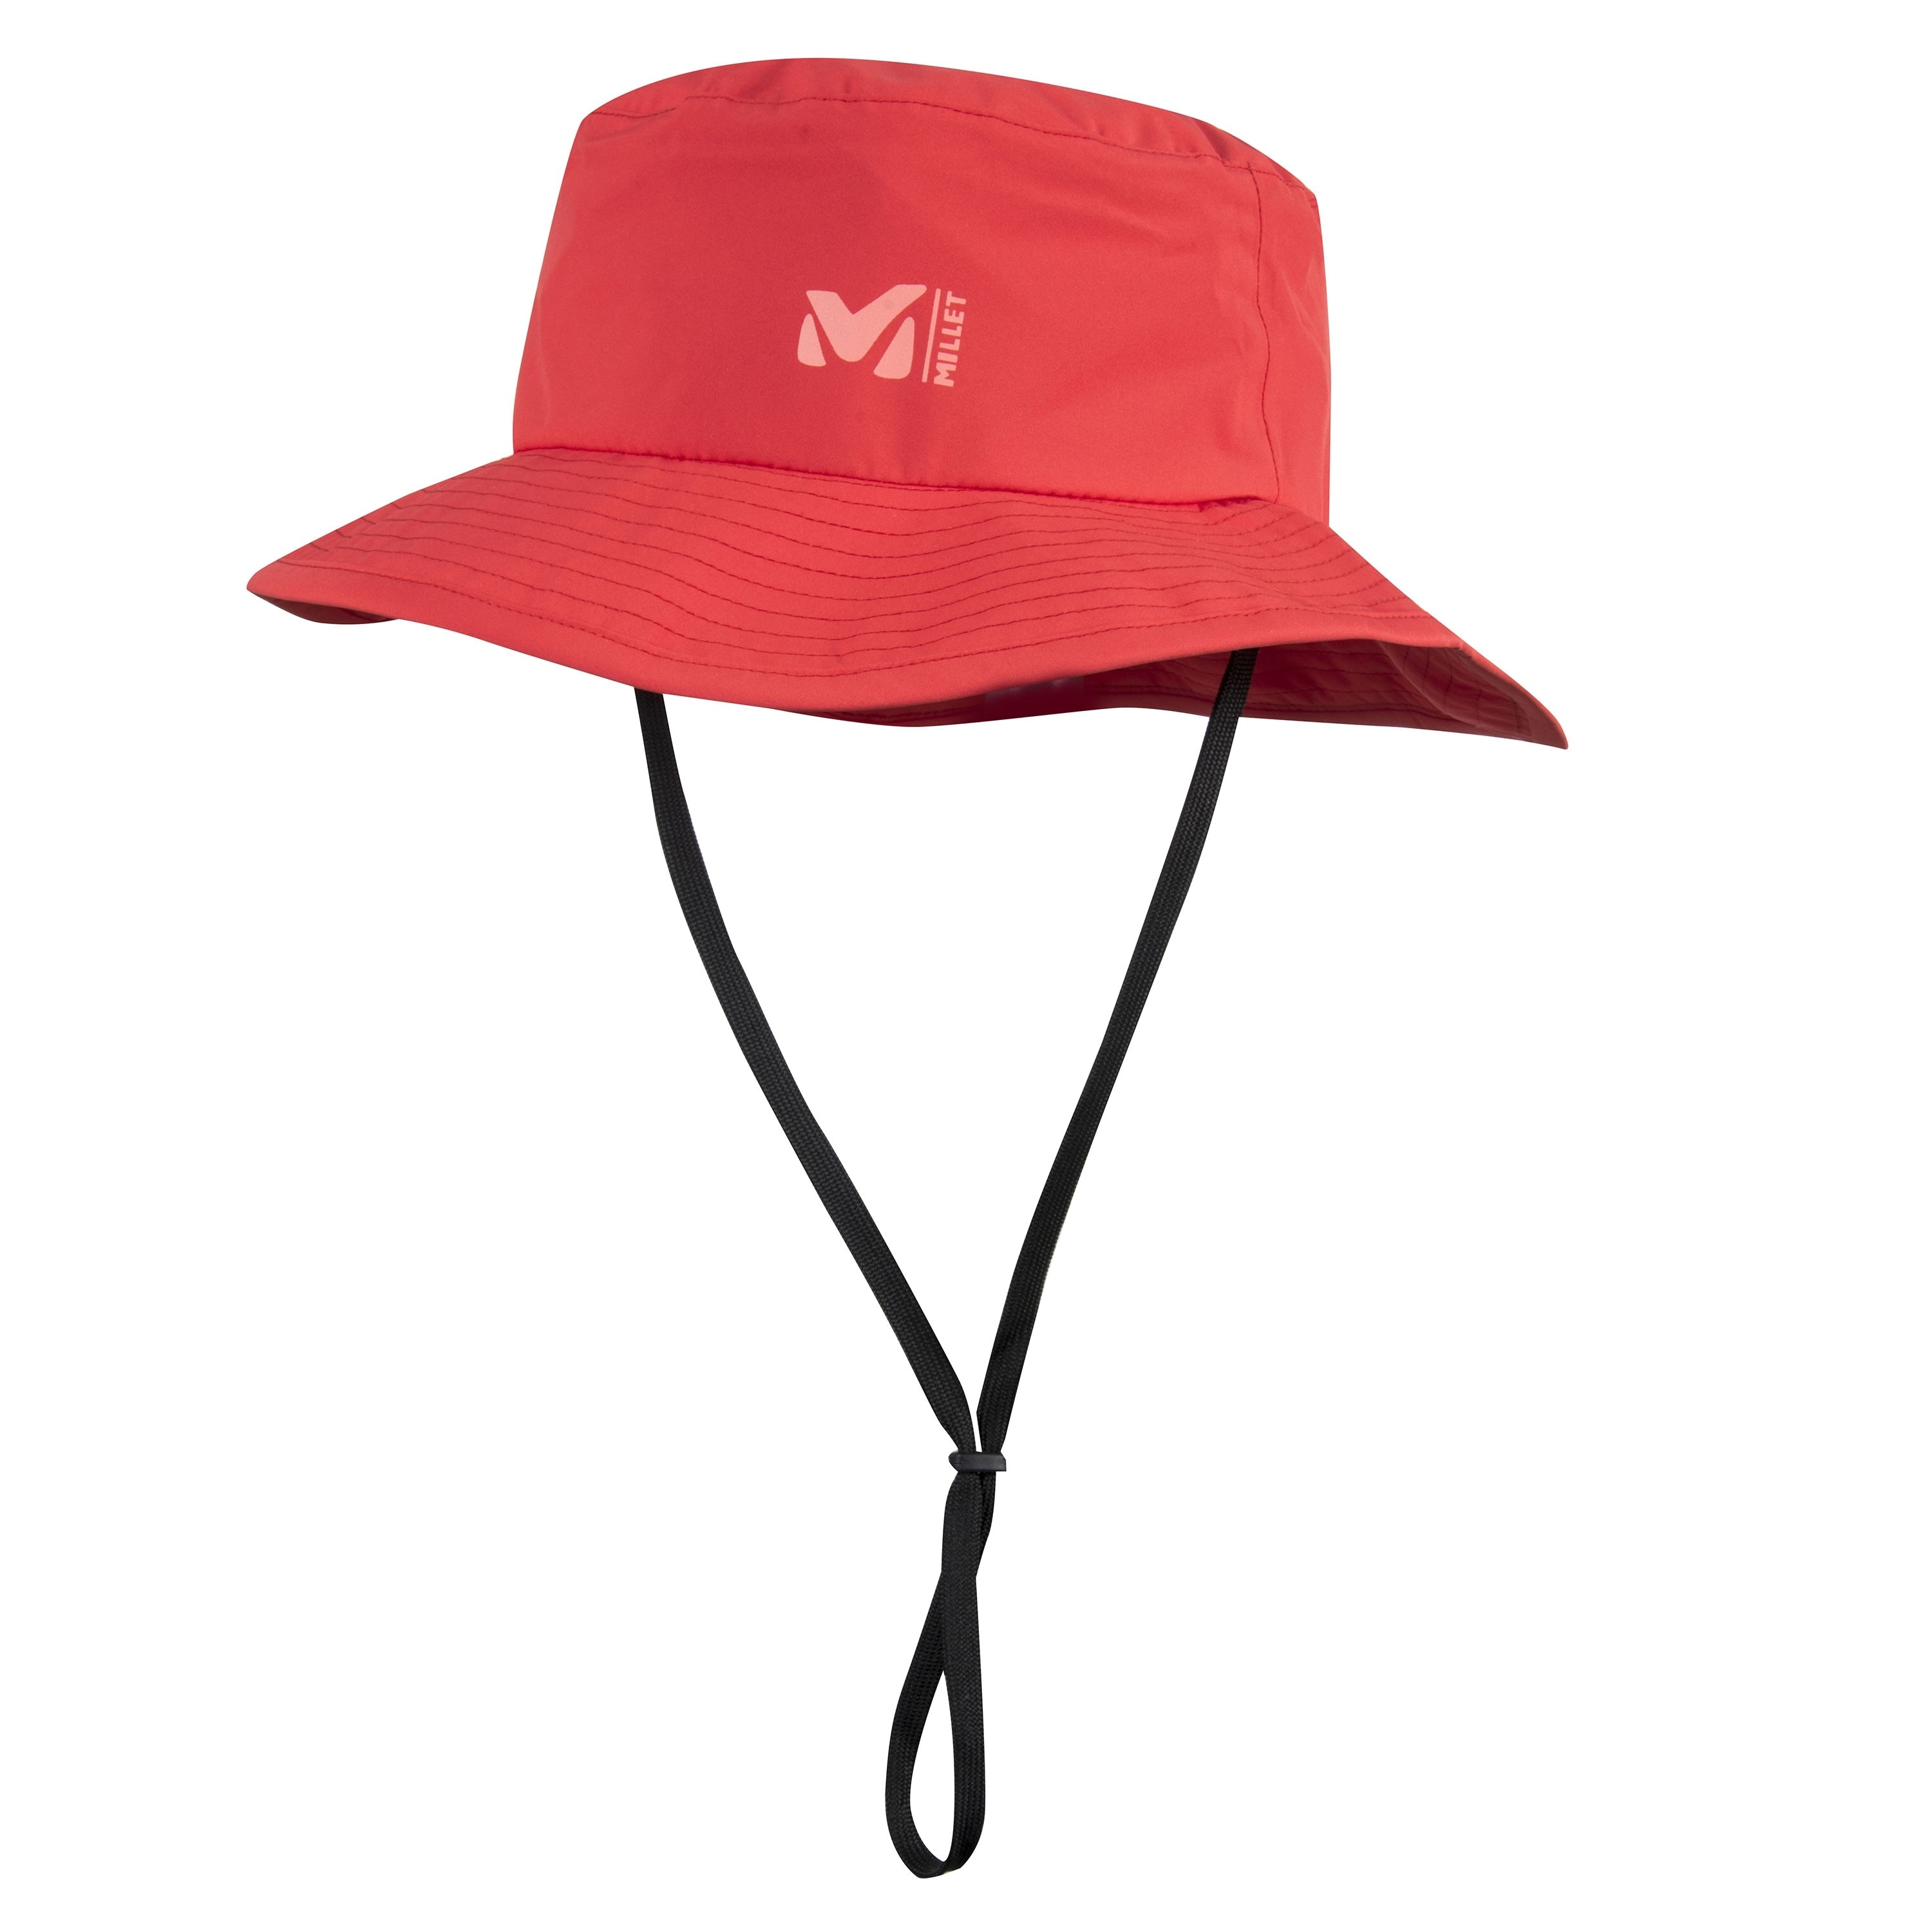 RAINPROOF HAT